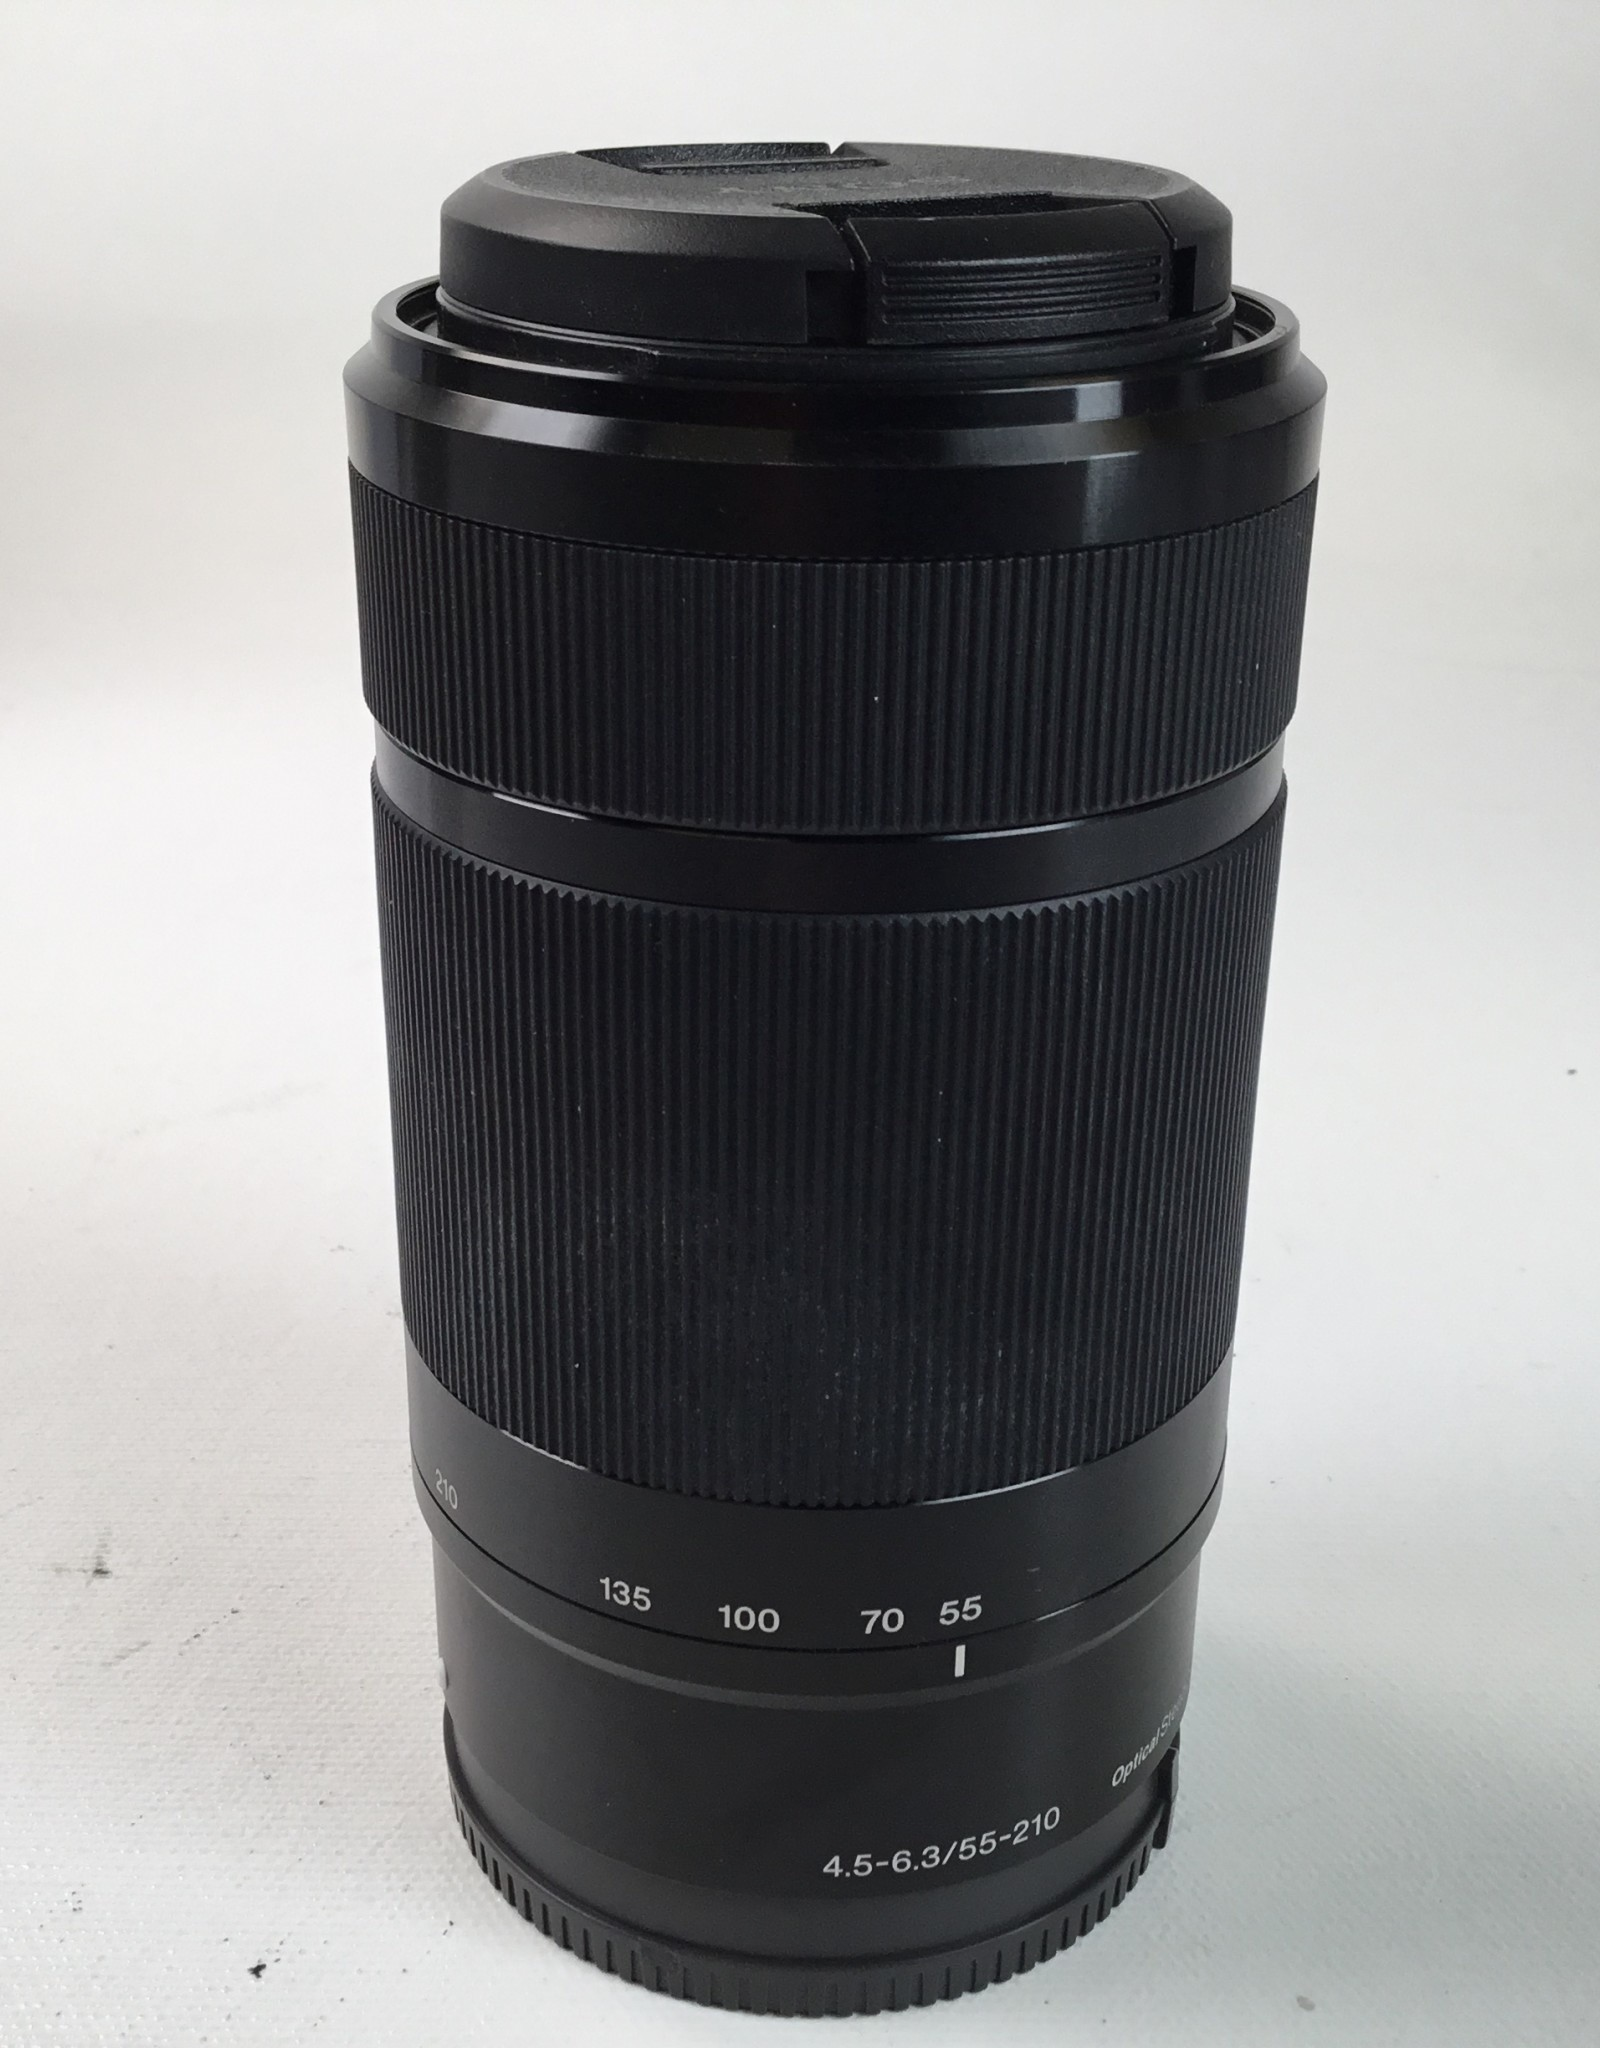 SONY Sony E 55-210mm f4.5-6.3 OSS Lens in Box Used EX+